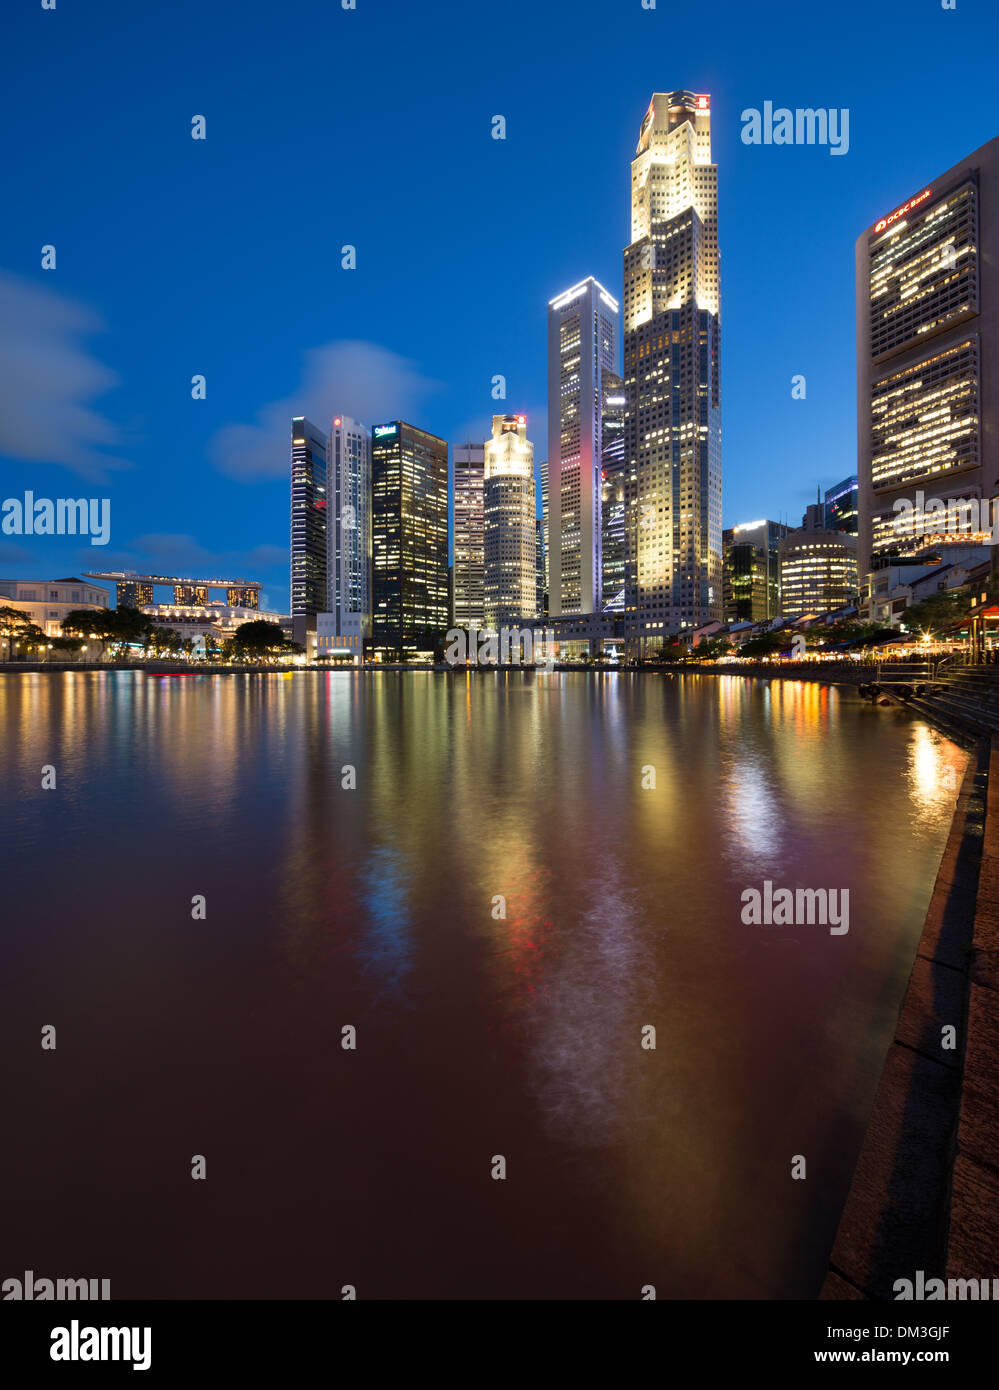 der Central Business District bei Nacht von Boat Quay, Singapur Stockbild